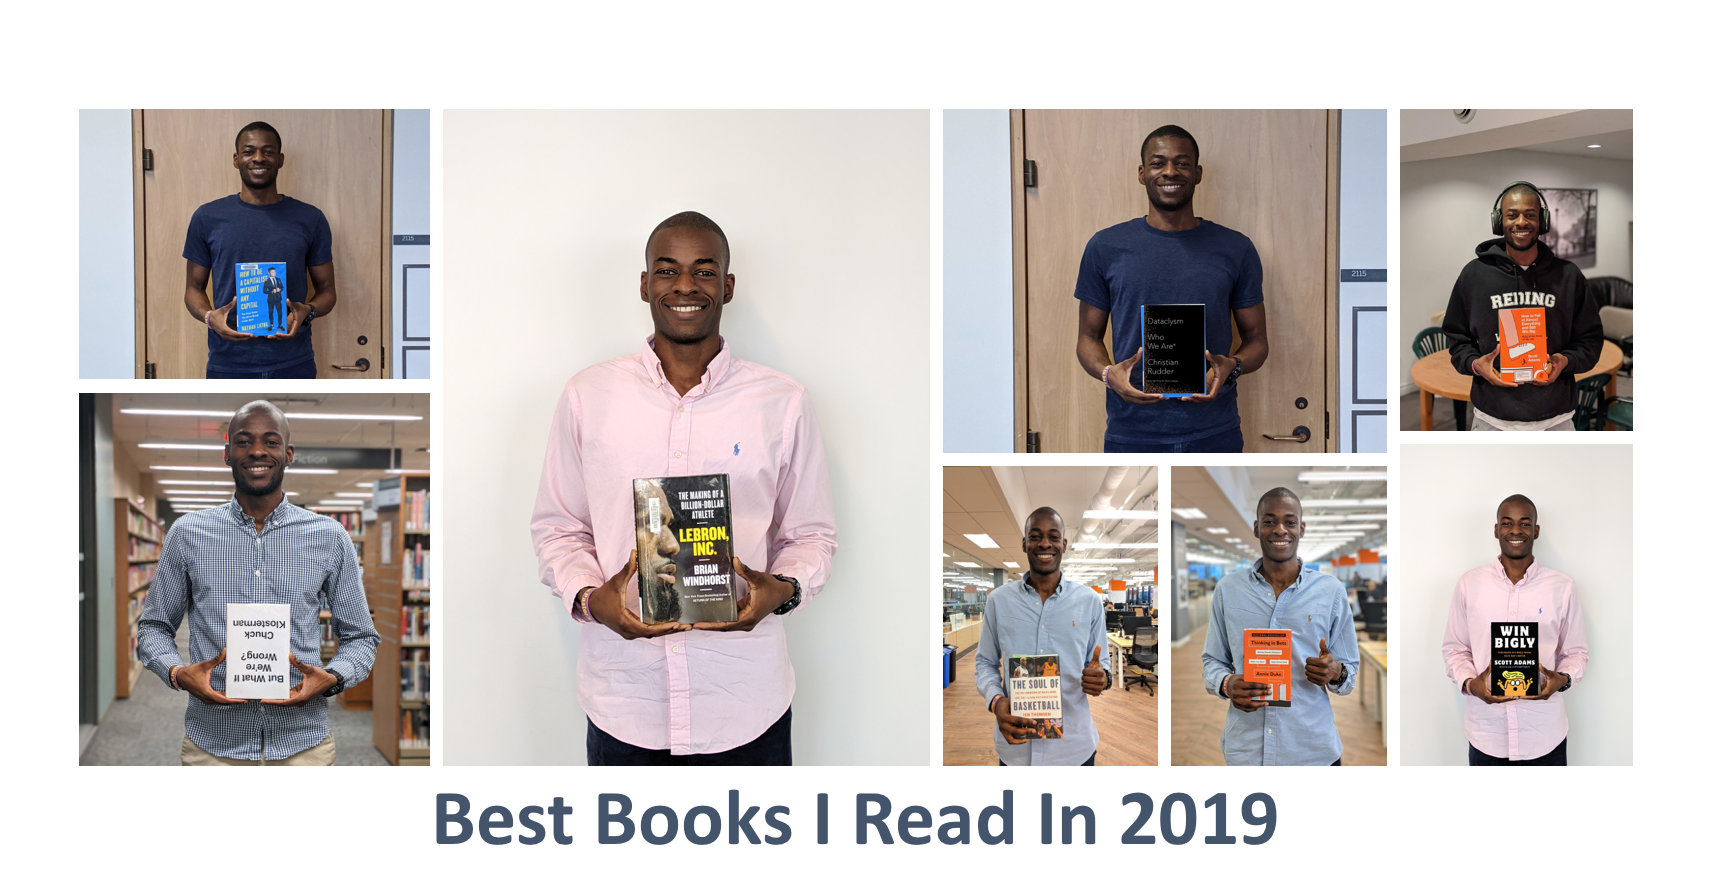 Best Books I Read in 2019